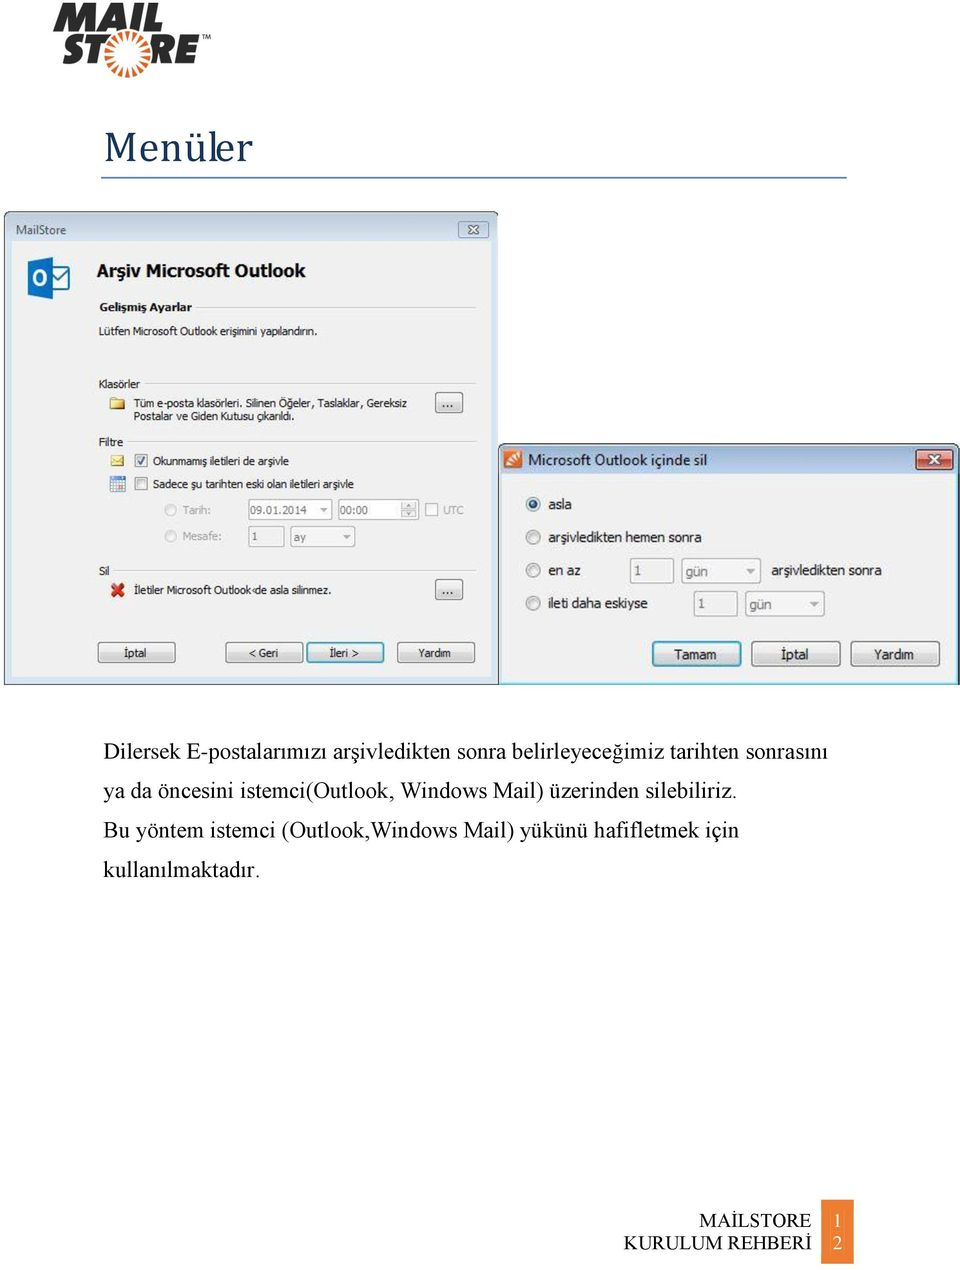 istemci(outlook, Windows Mail) üzerinden silebiliriz.